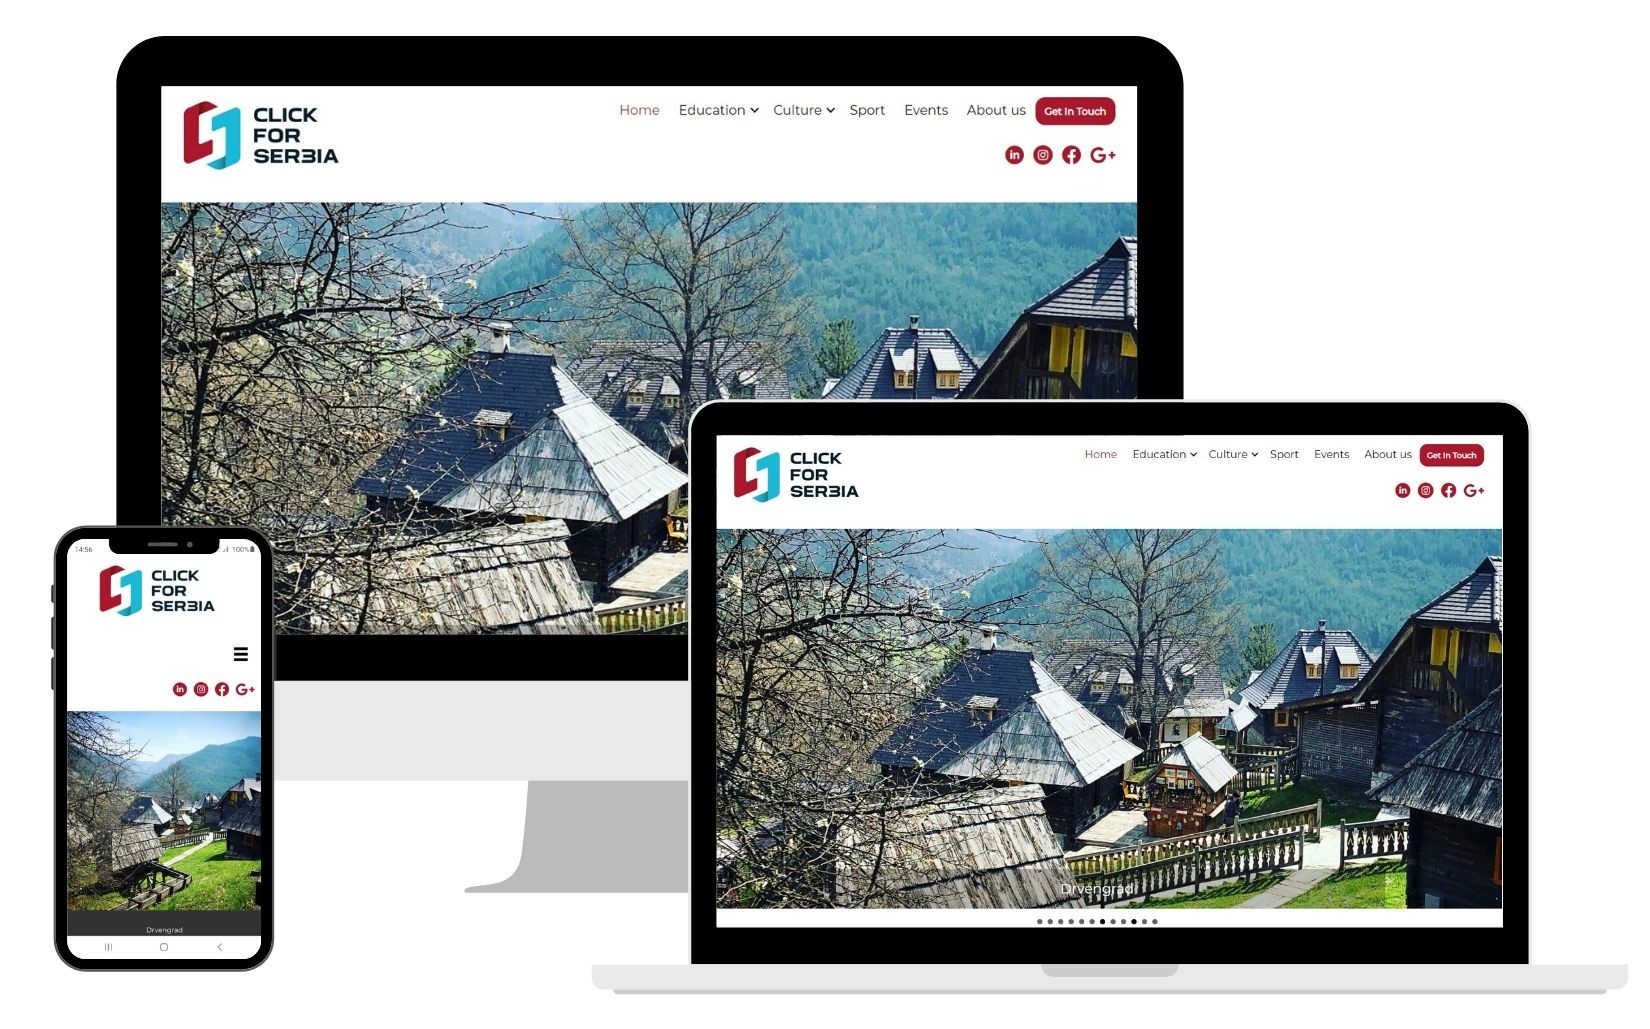 web design, click for serbia, amt, aspermont media & technology